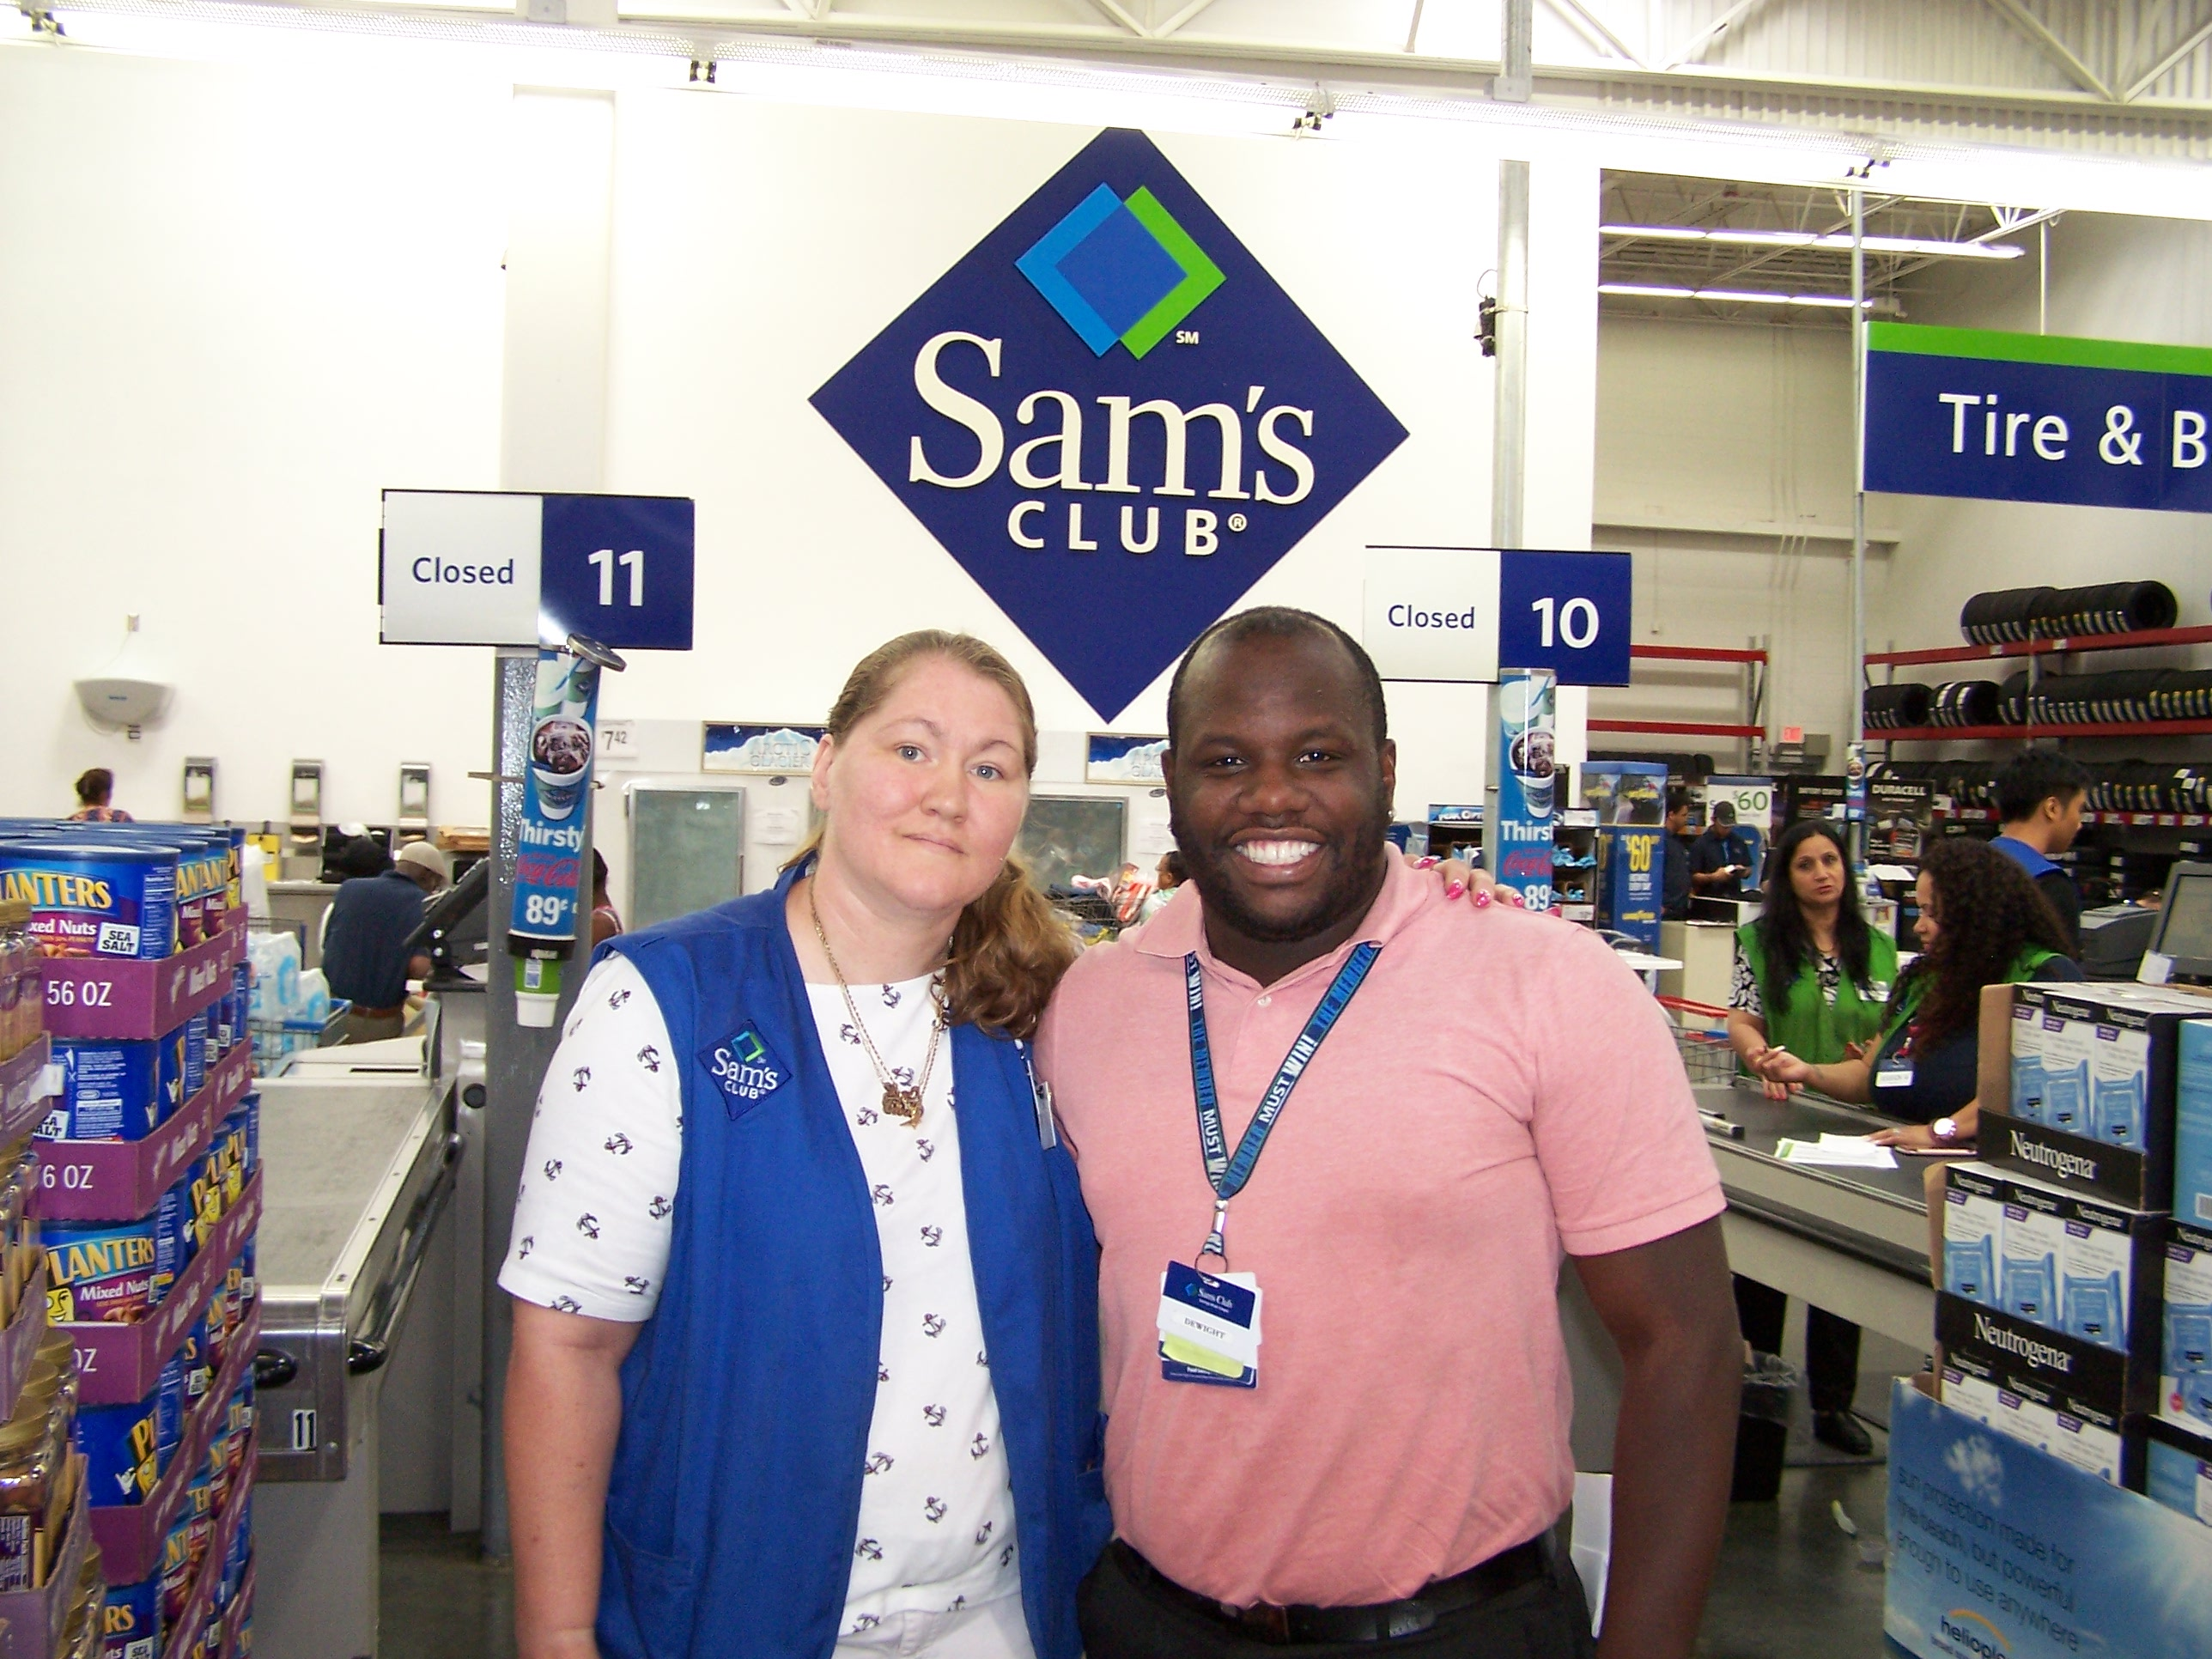 Sam's club employment services